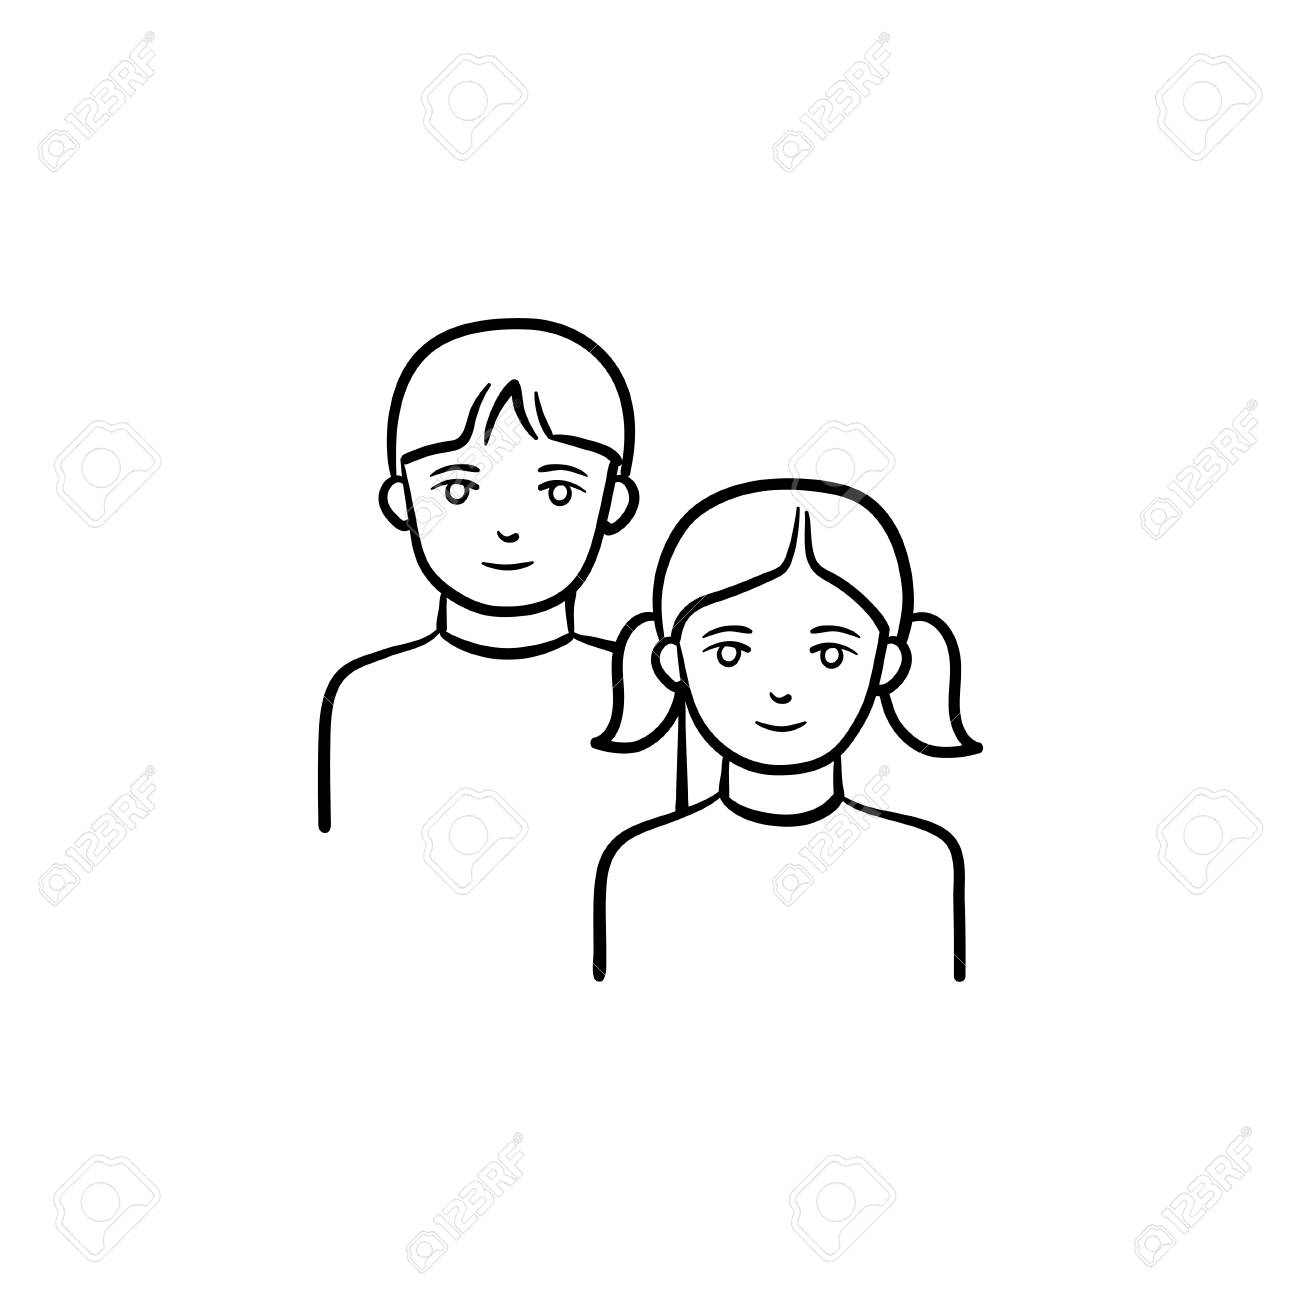 Girl and boy hand drawn outline doodle icon youth vector sketch illustration for print